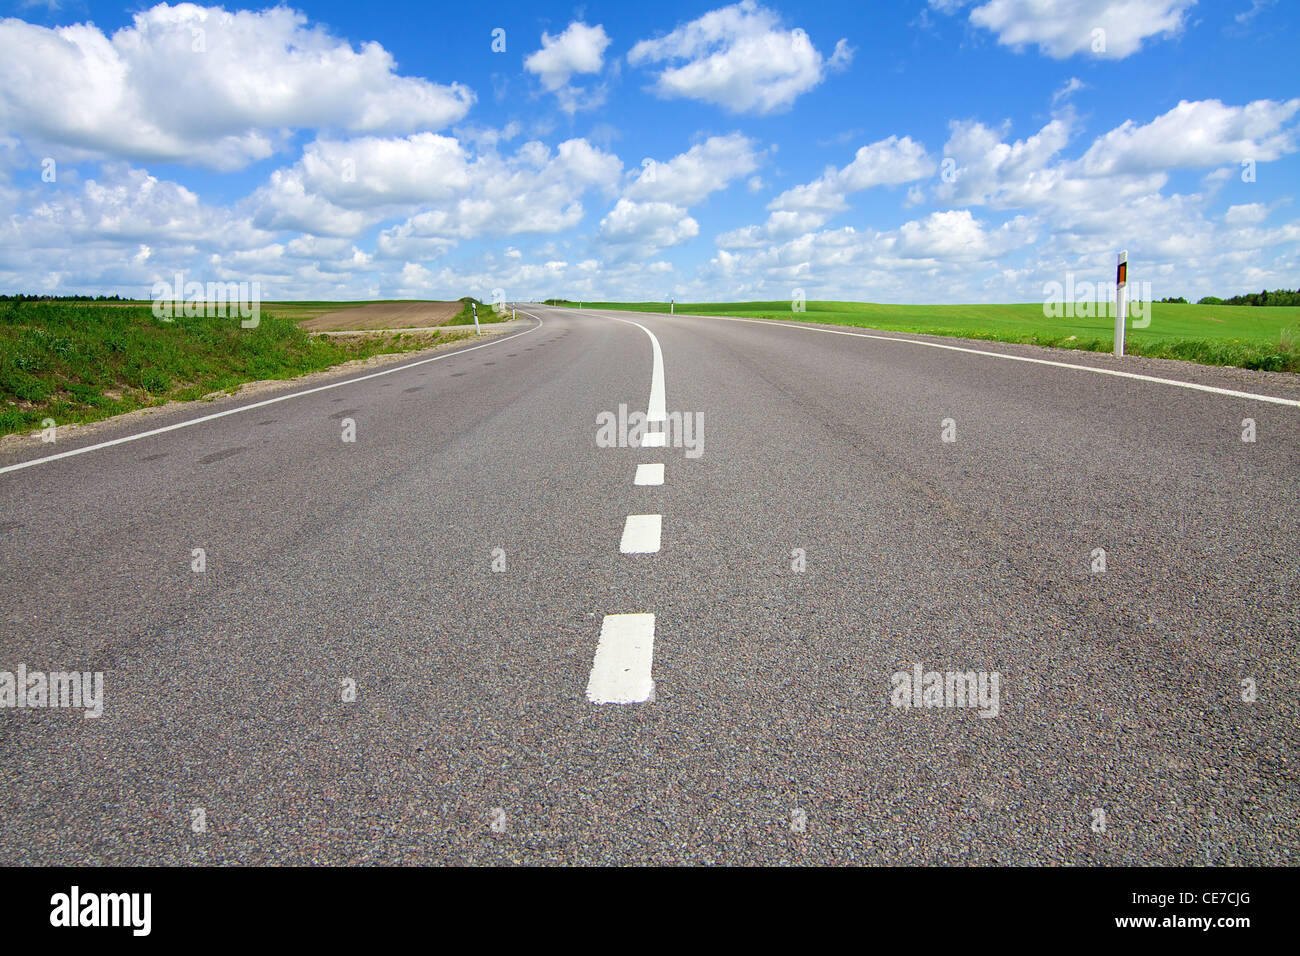 Long road stretching out into the distance Stock Photo